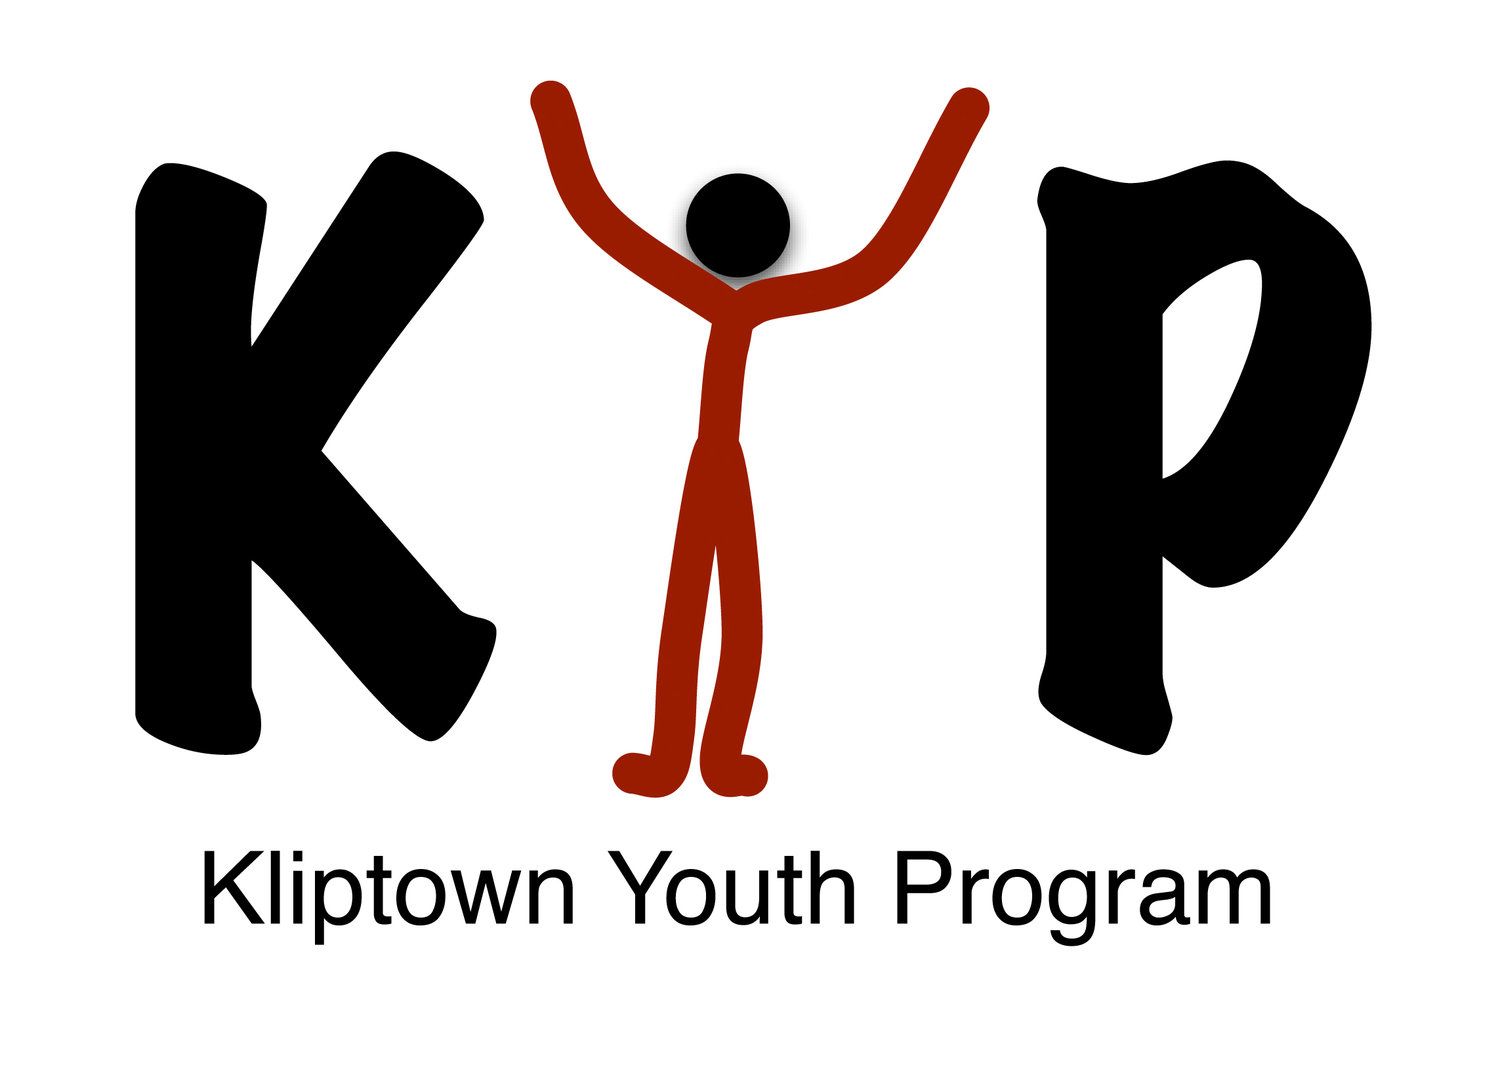 Kliptown Youth Program